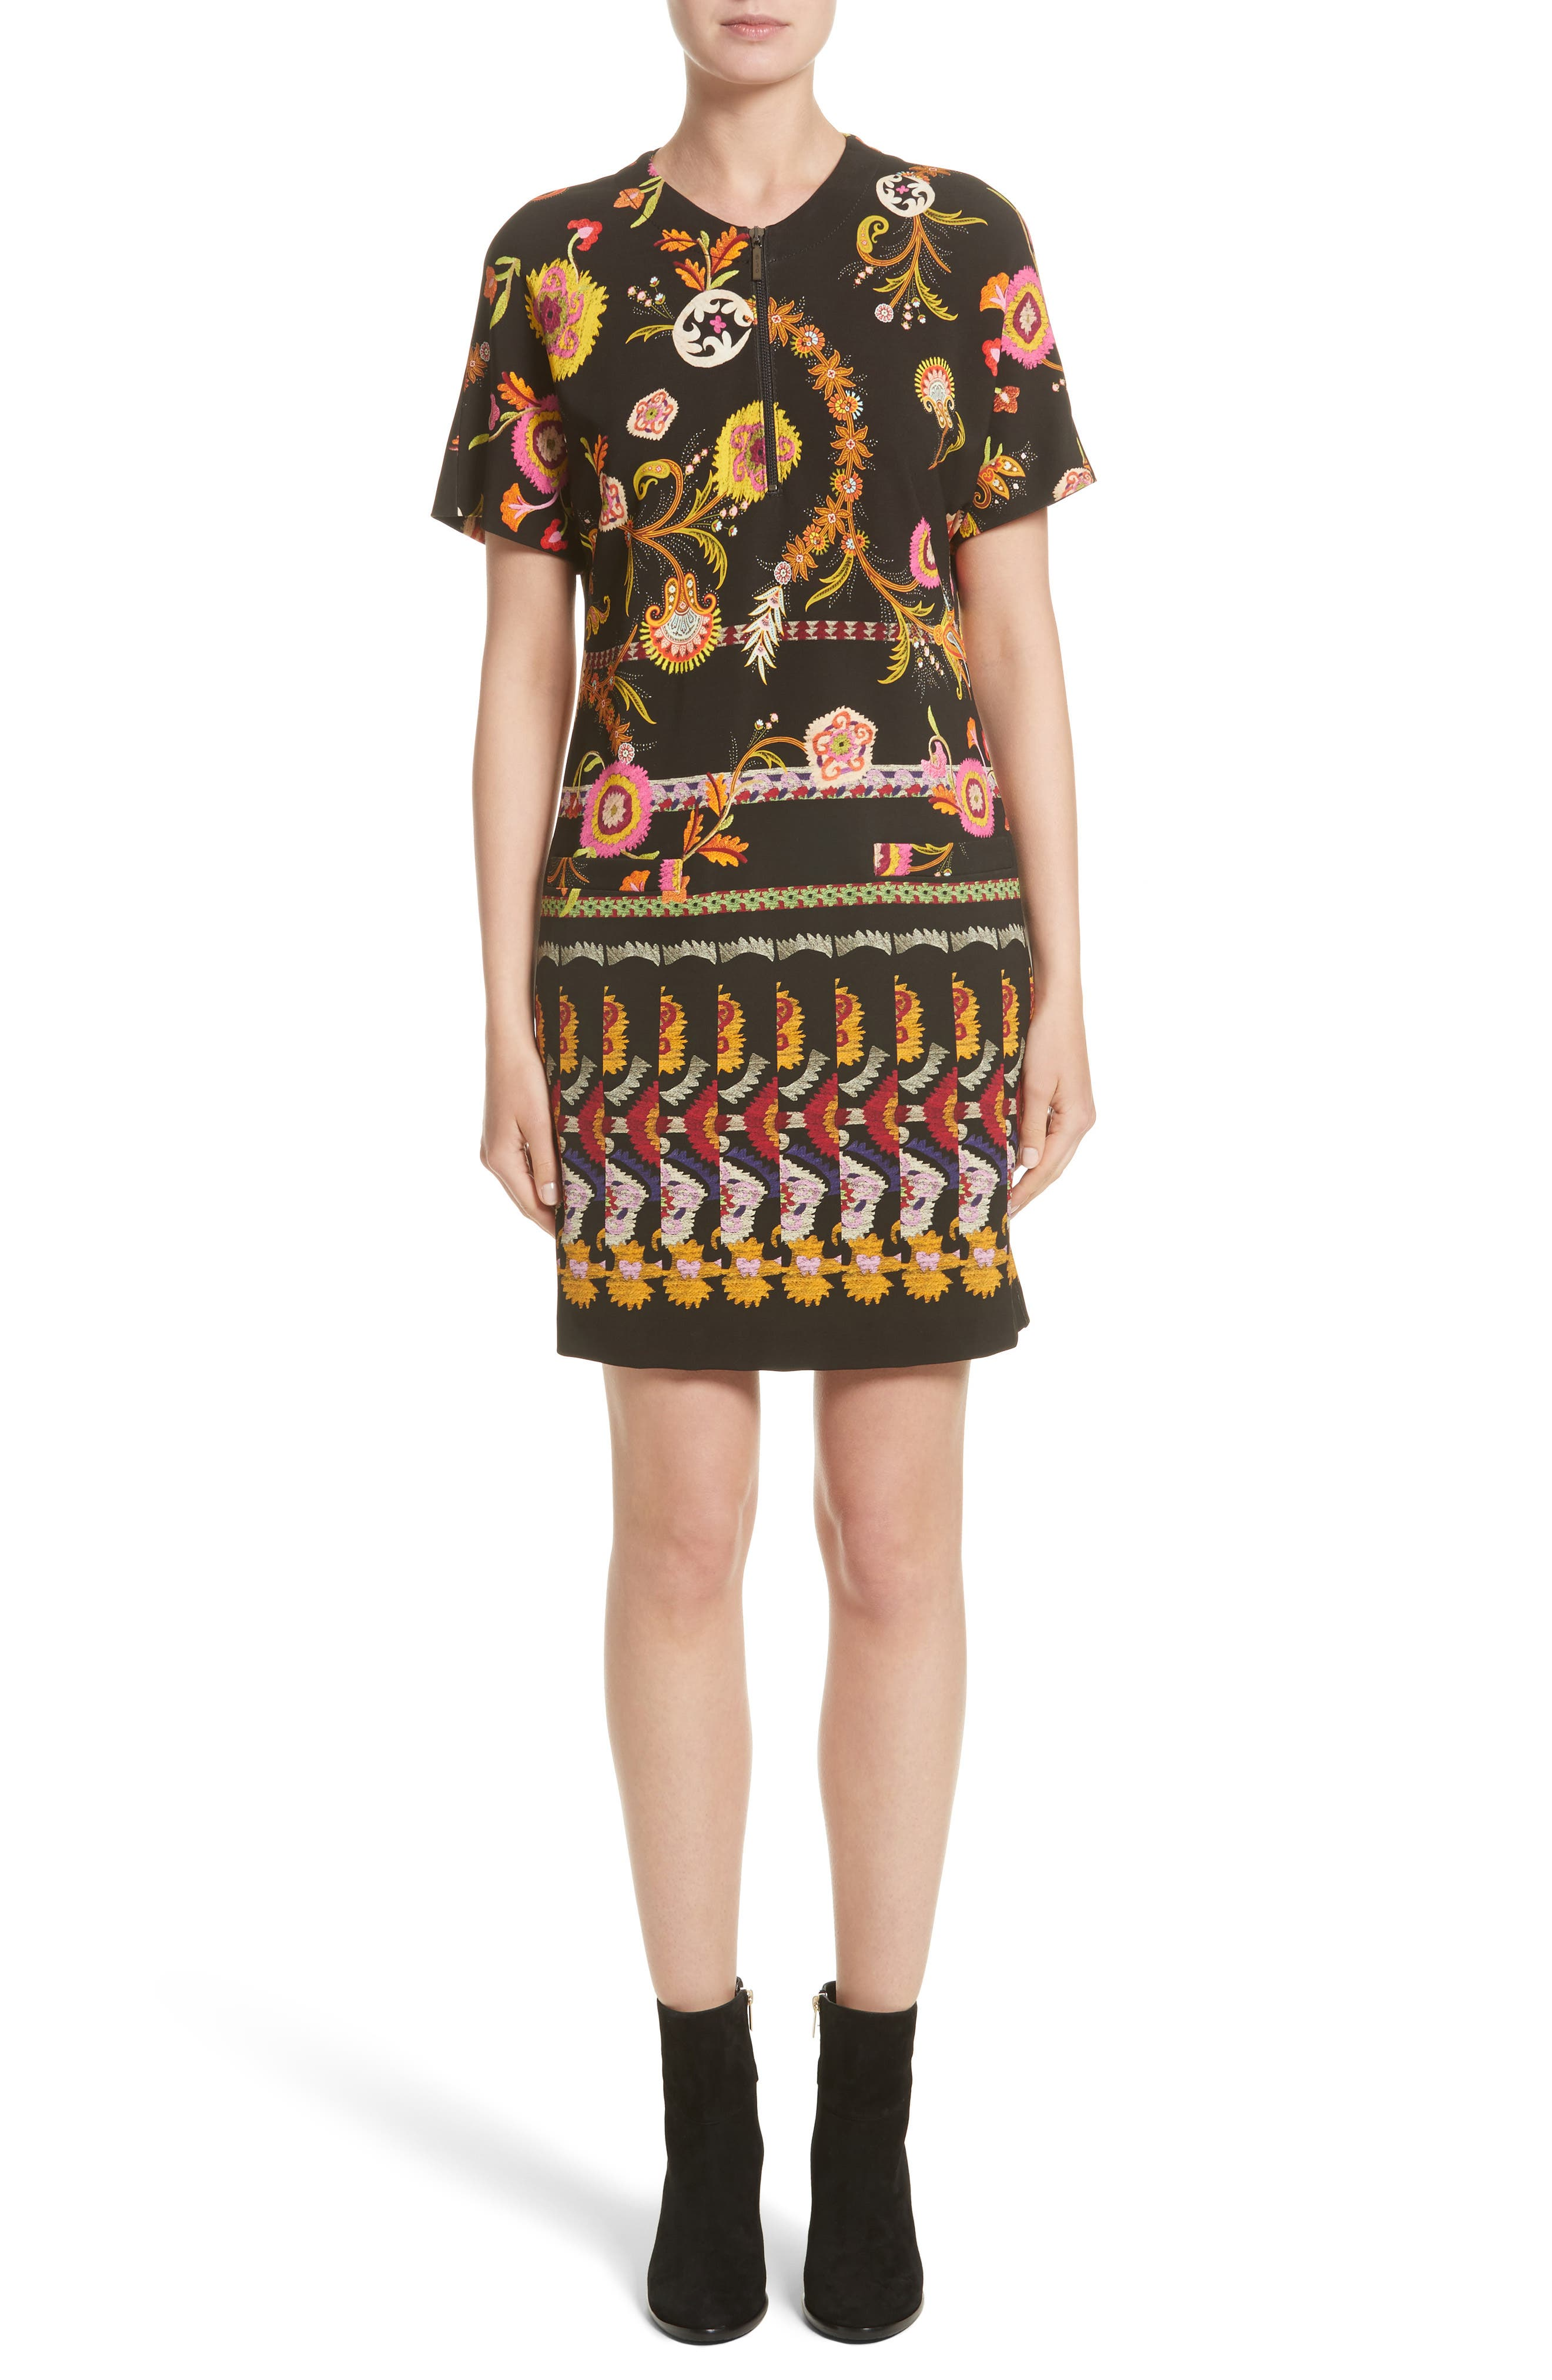 Etro Floral & Paisley Jersey Dress